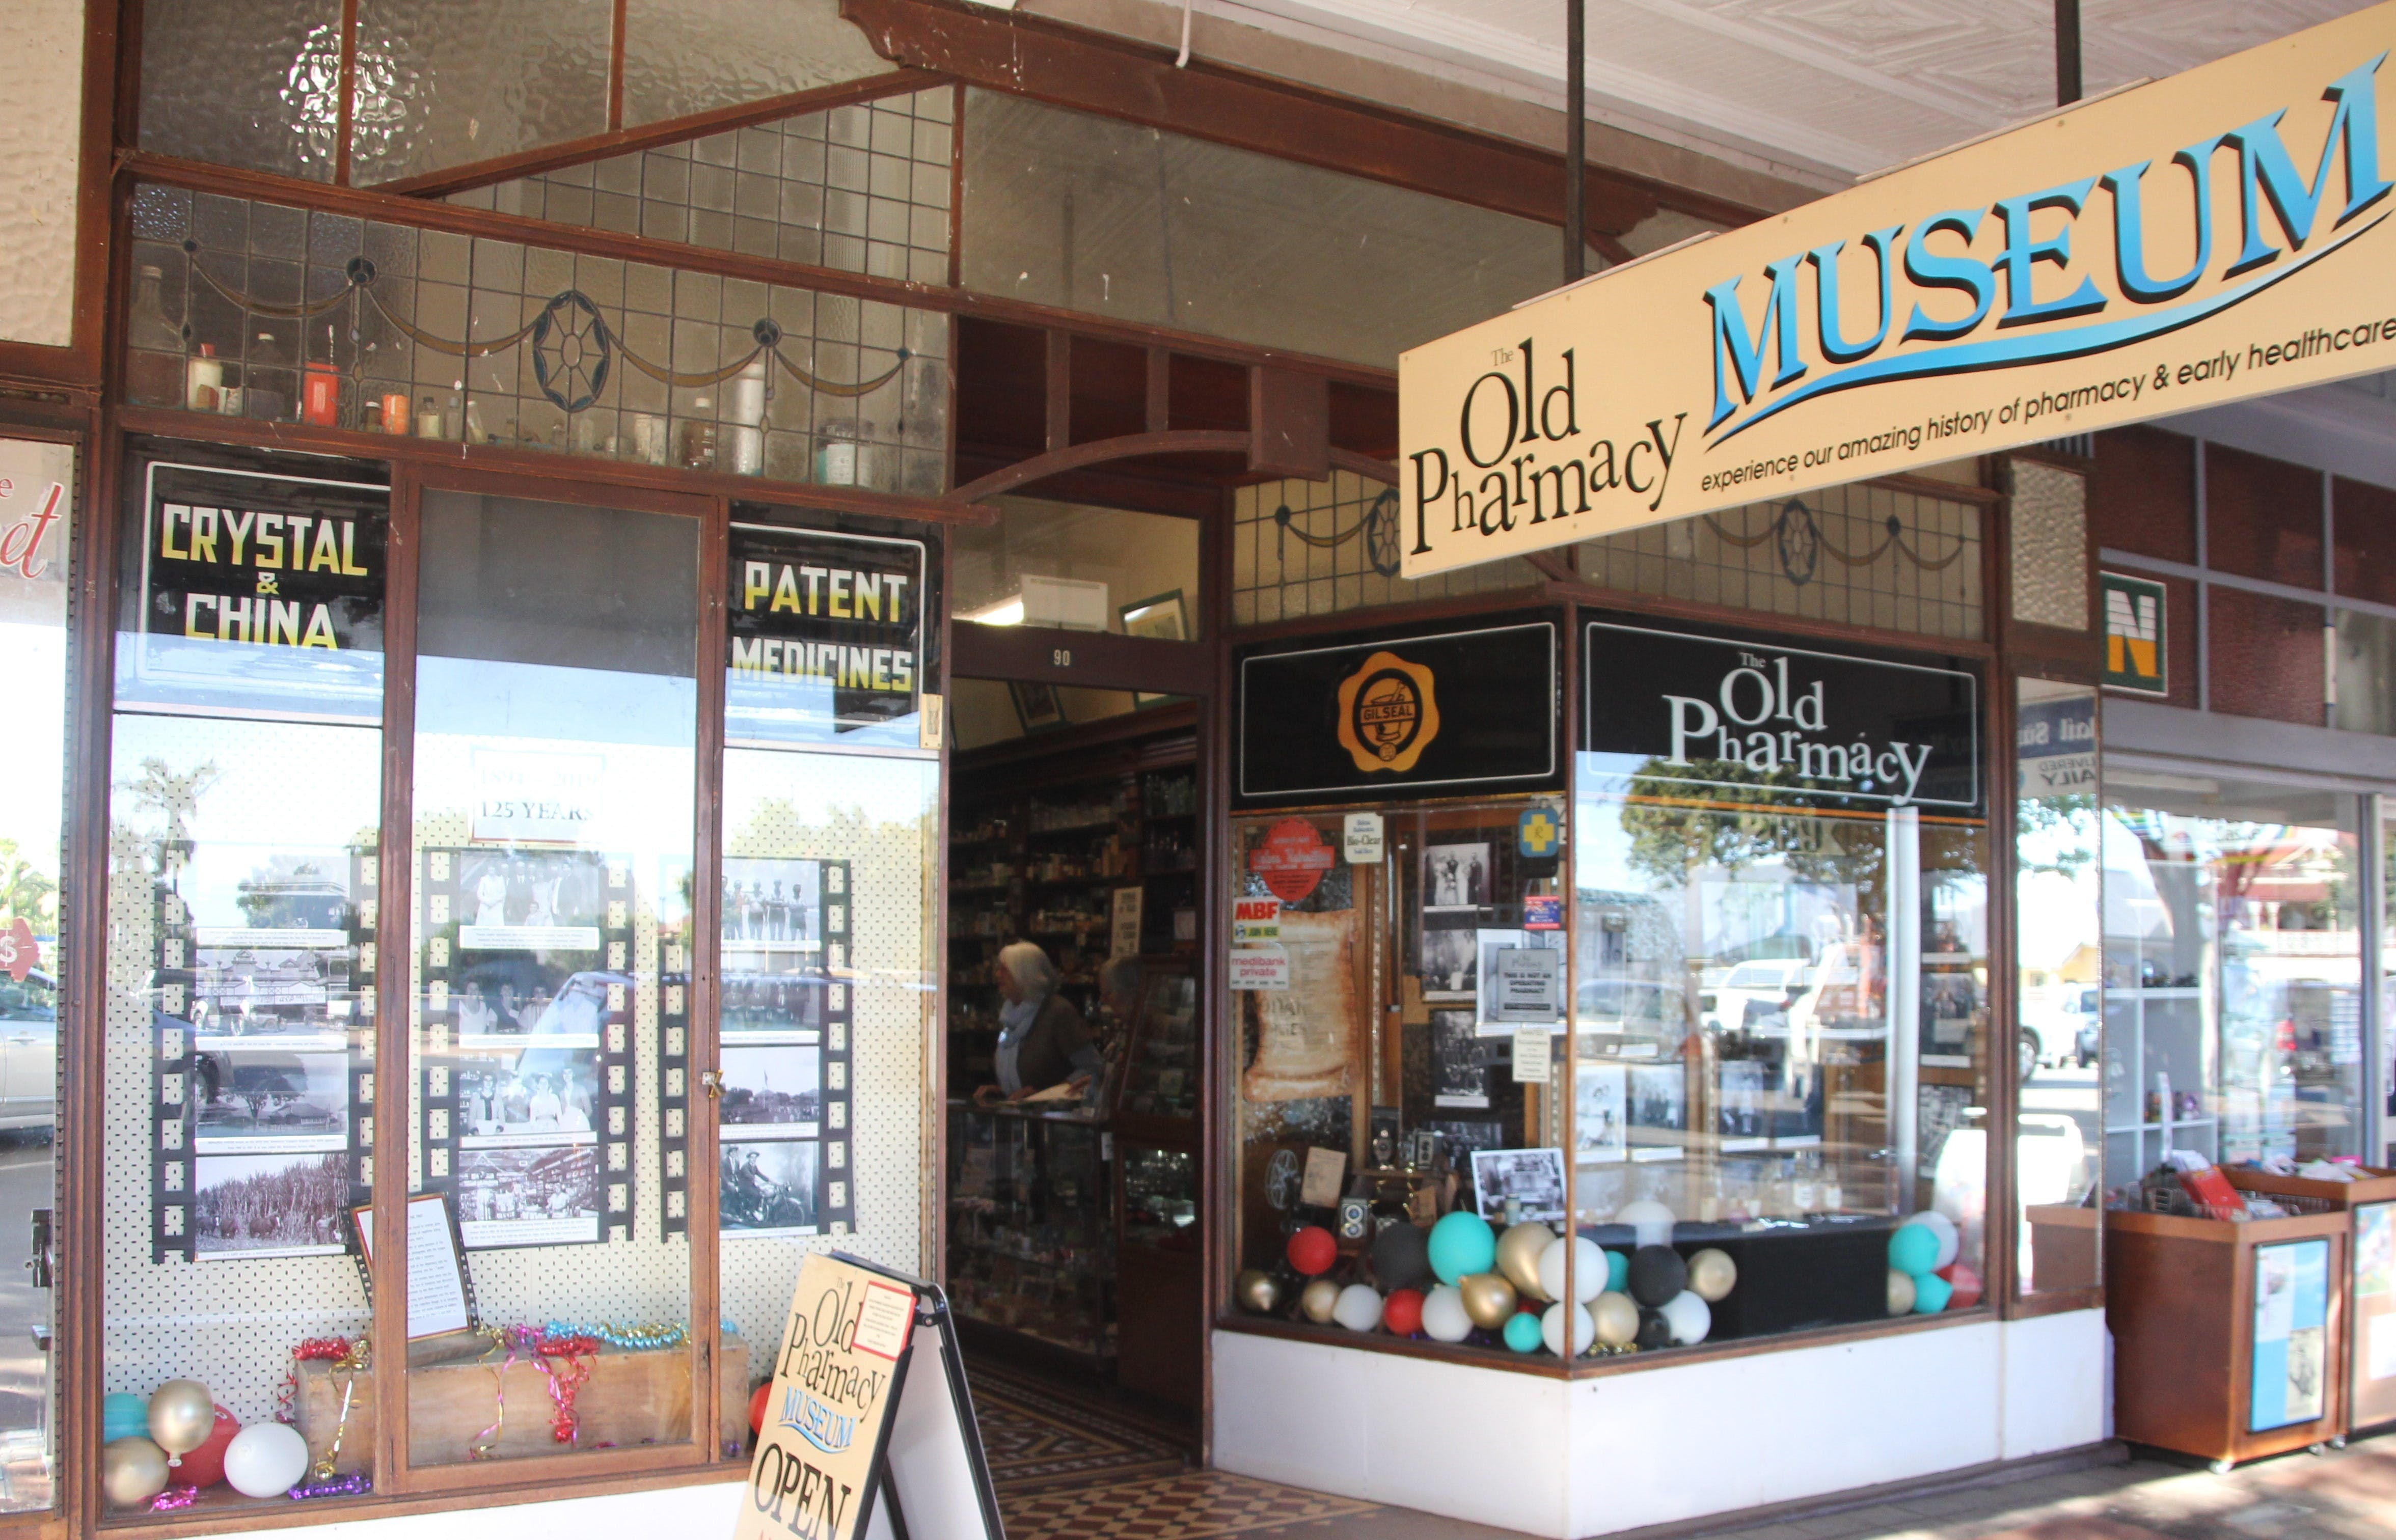 Old Pharmacy Museum  Childers - Melbourne Tourism